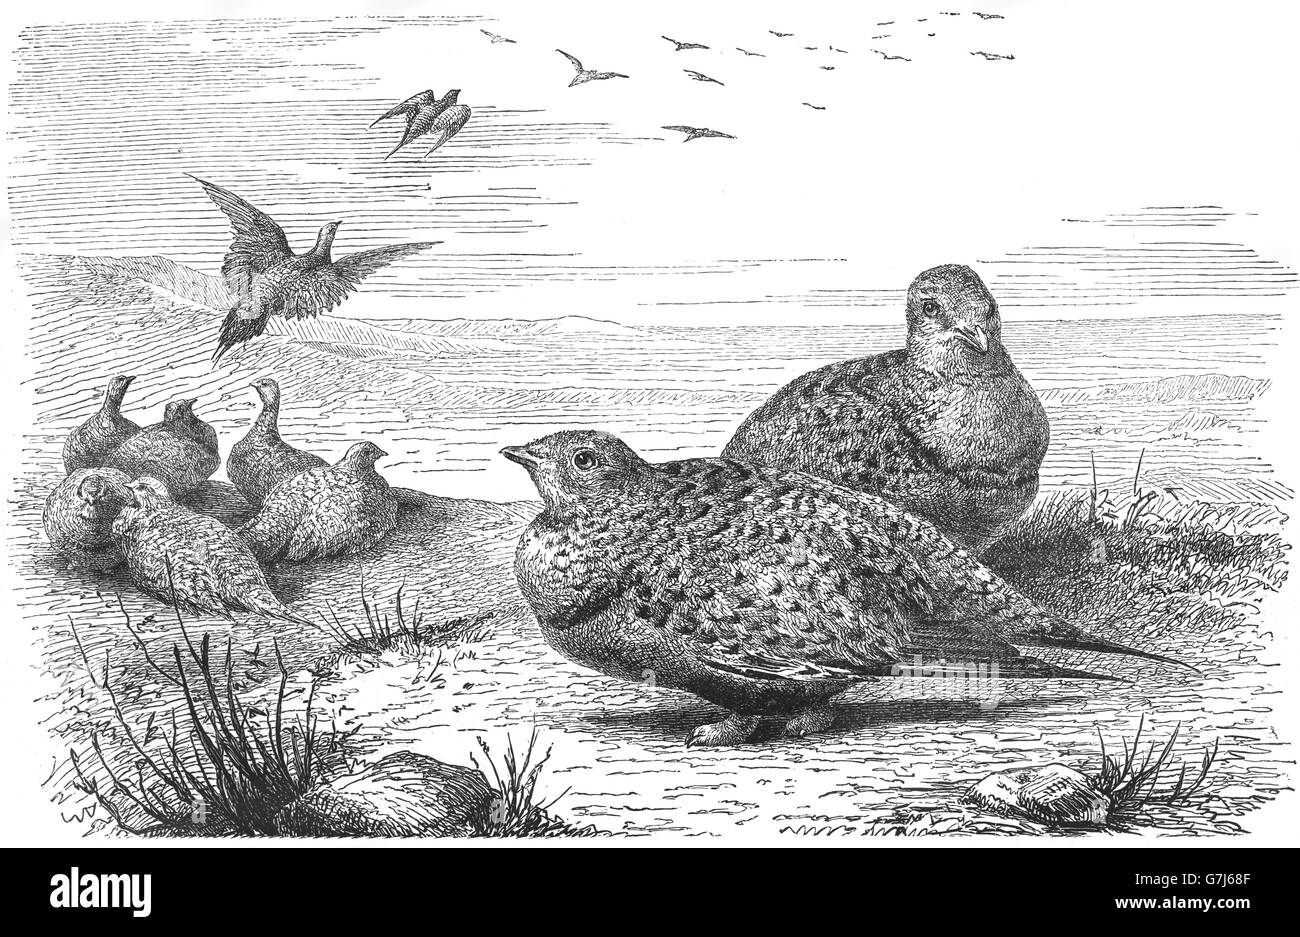 Pallas's sandgrouse, Syrrhaptes paradoxus, illustration from book dated 1904 - Stock Image